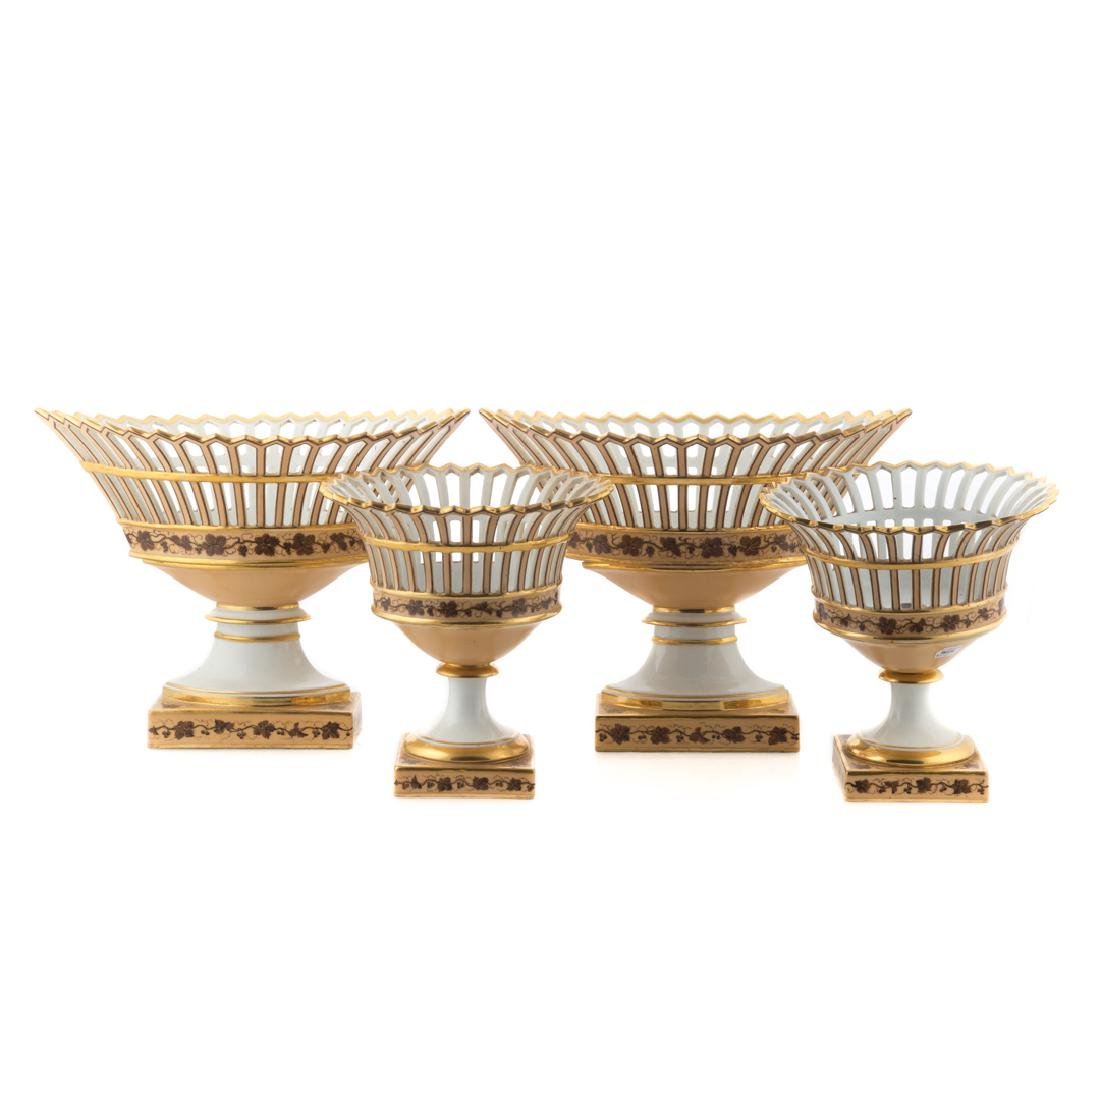 4 Pochet D' a Paris porcelain fruit baskets